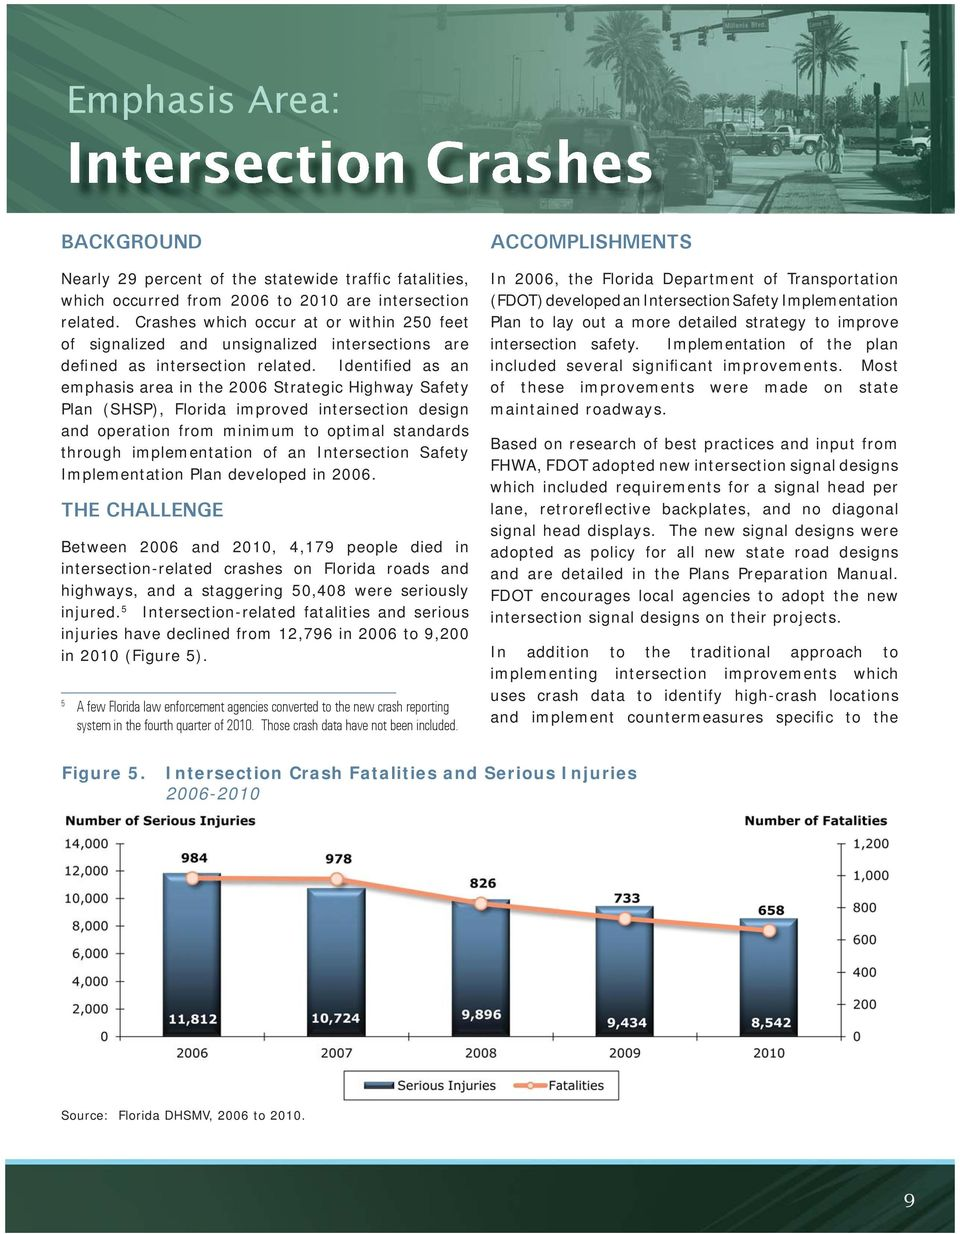 Identified as an emphasis area in the 2006 Strategic Highway Safety Plan (SHSP), Florida improved intersection design and operation from minimum to optimal standards through implementation of an